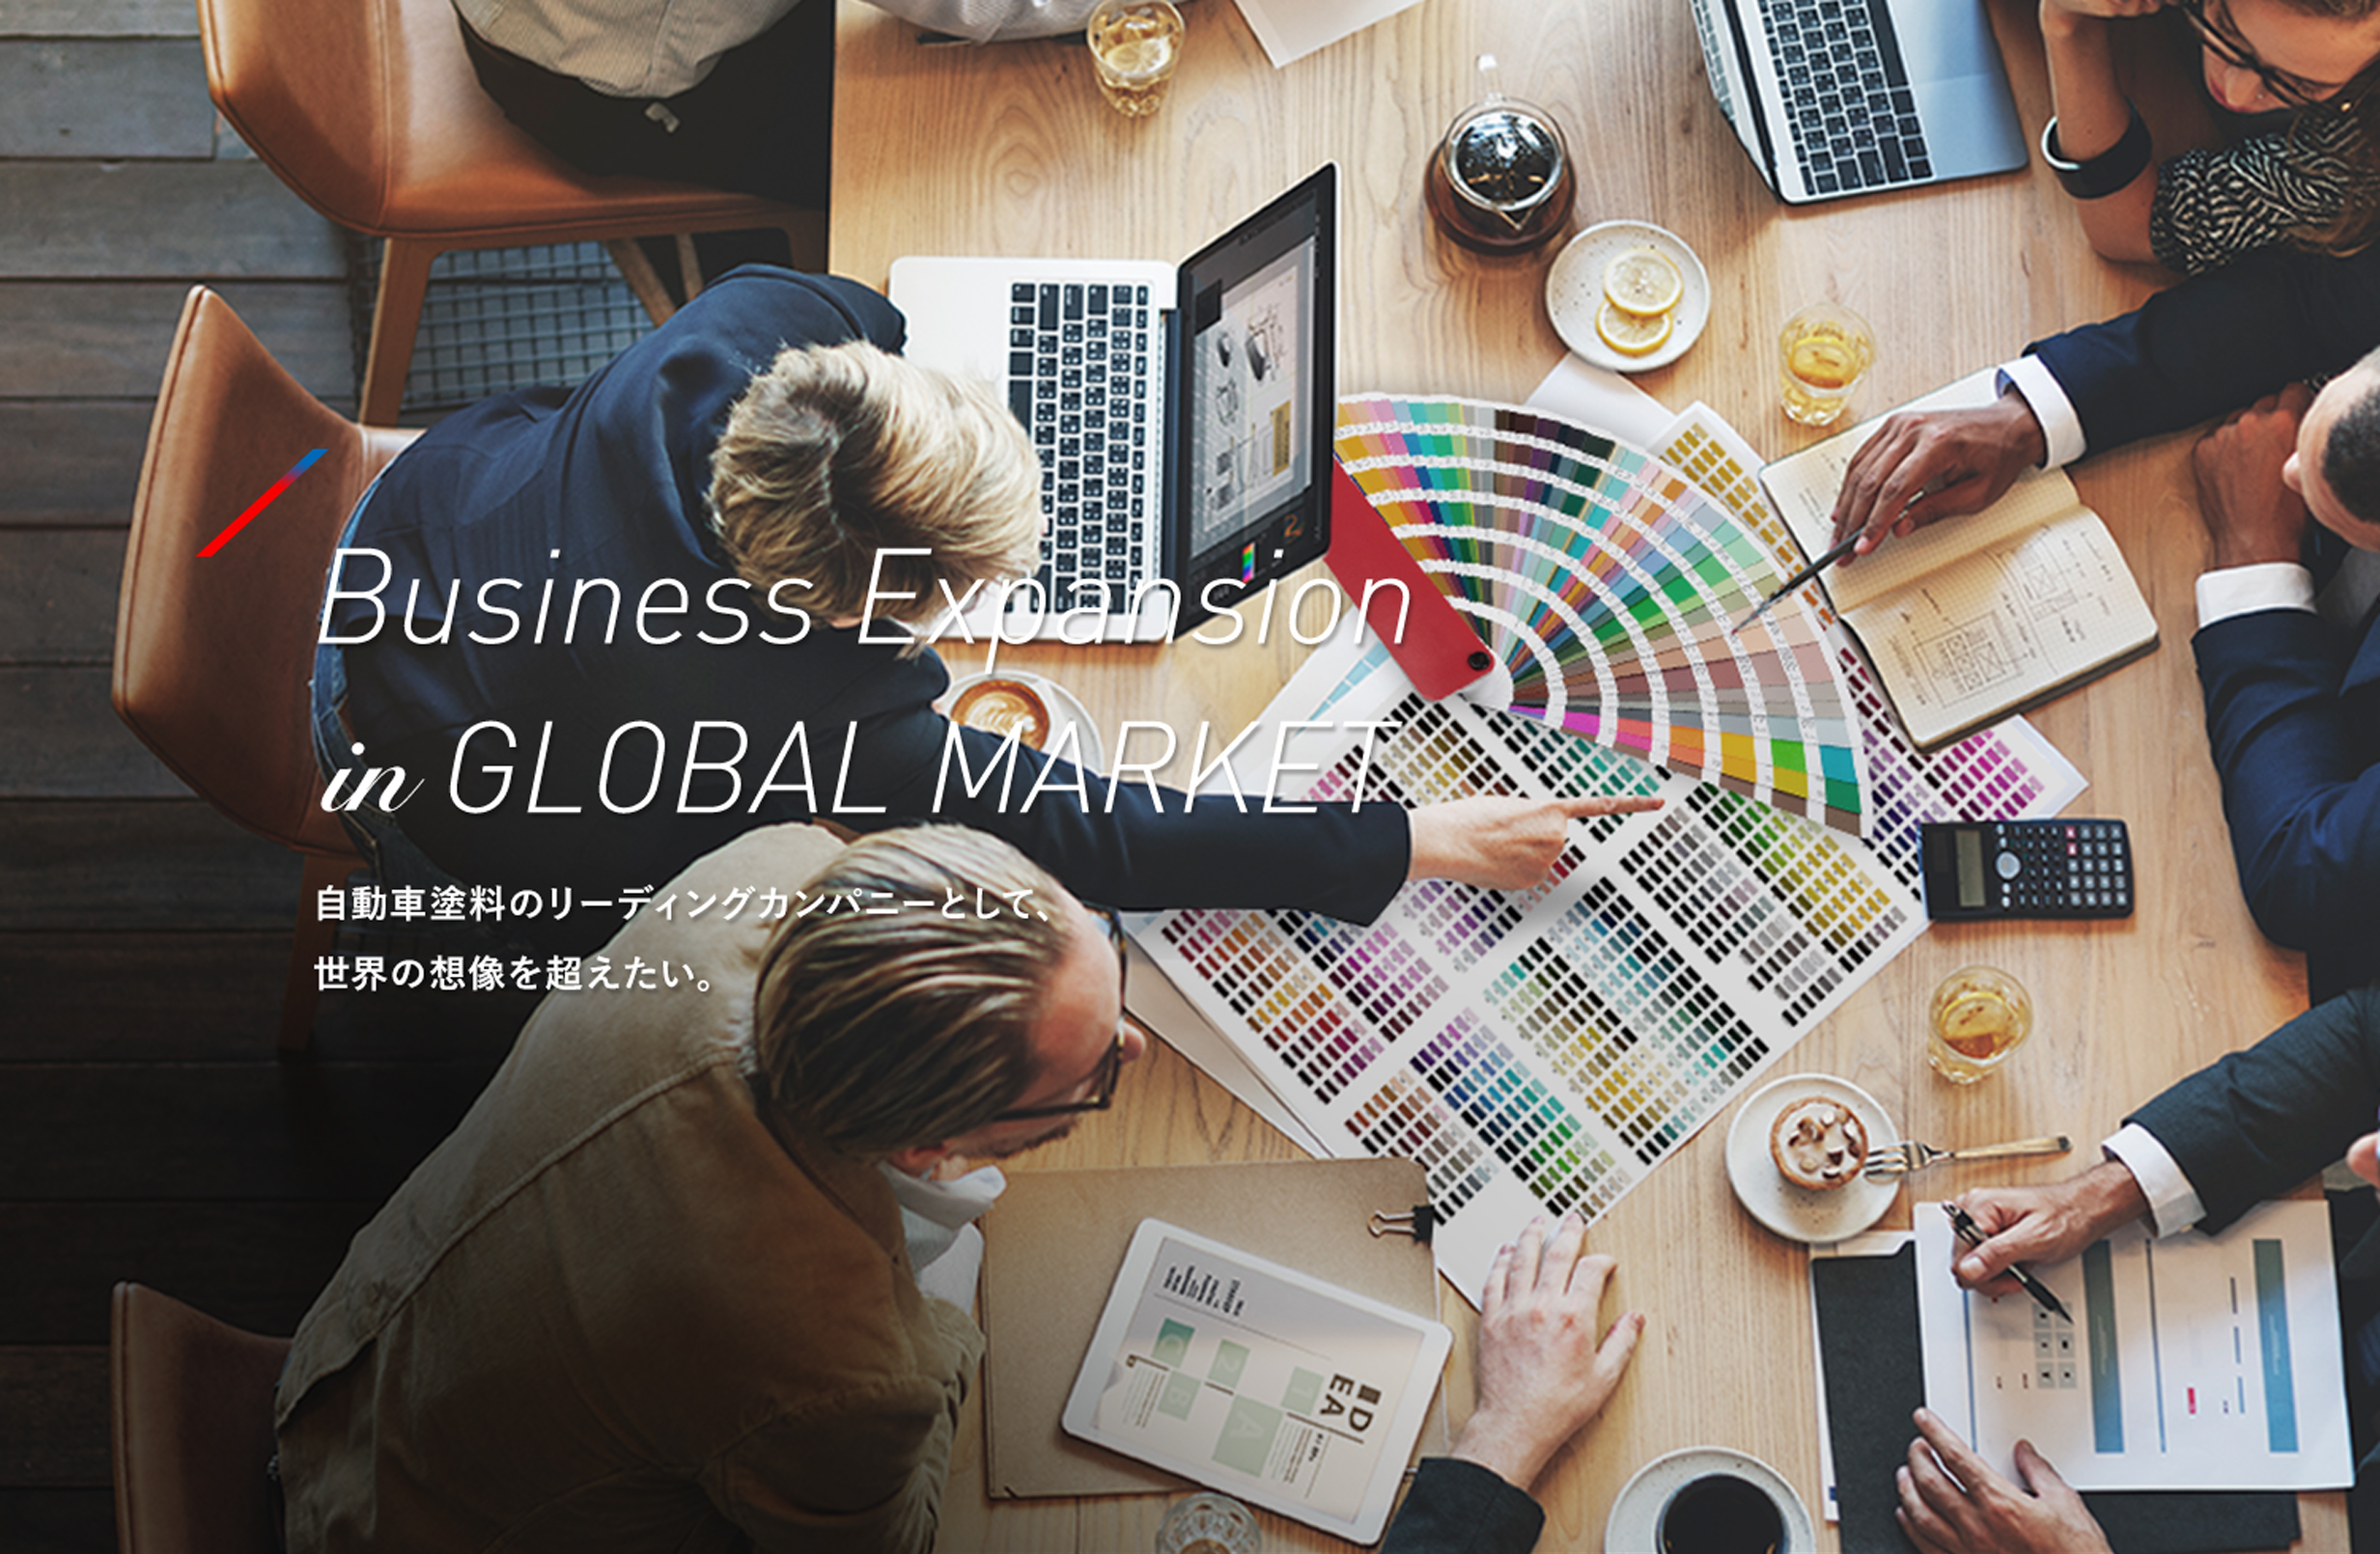 Business Expansion in GLOBAL MARKET